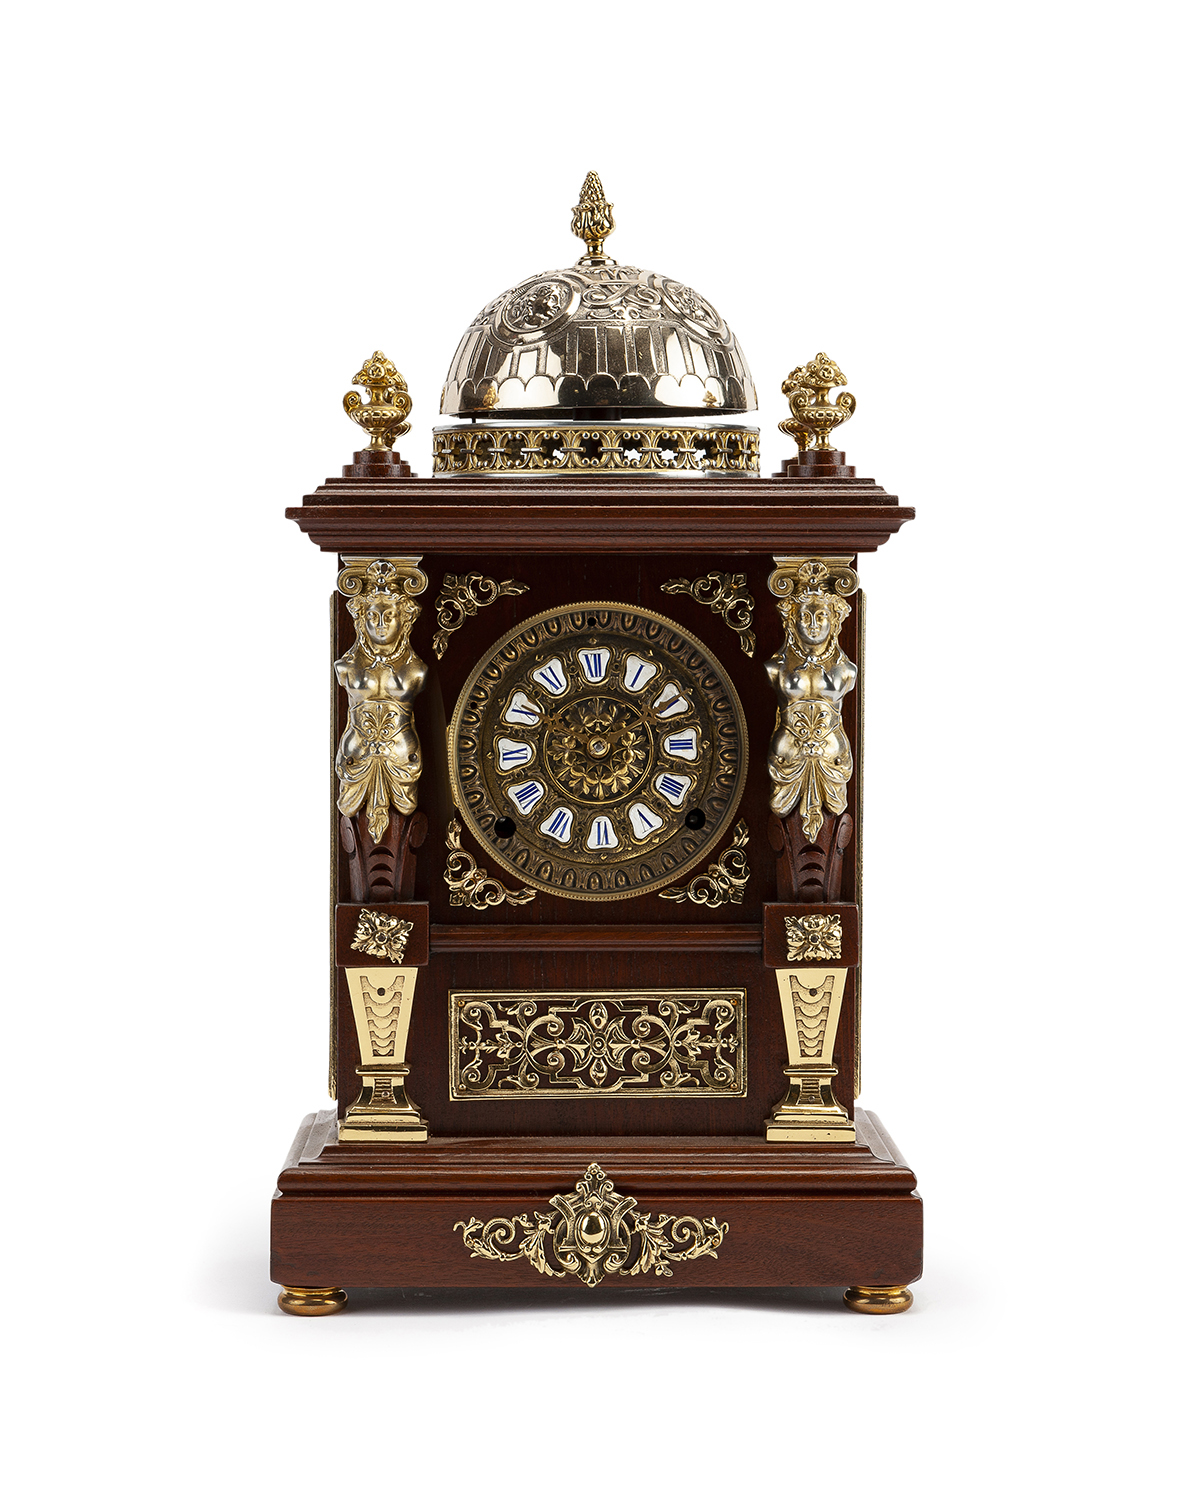 A gilt bronze-mounted mantel clock